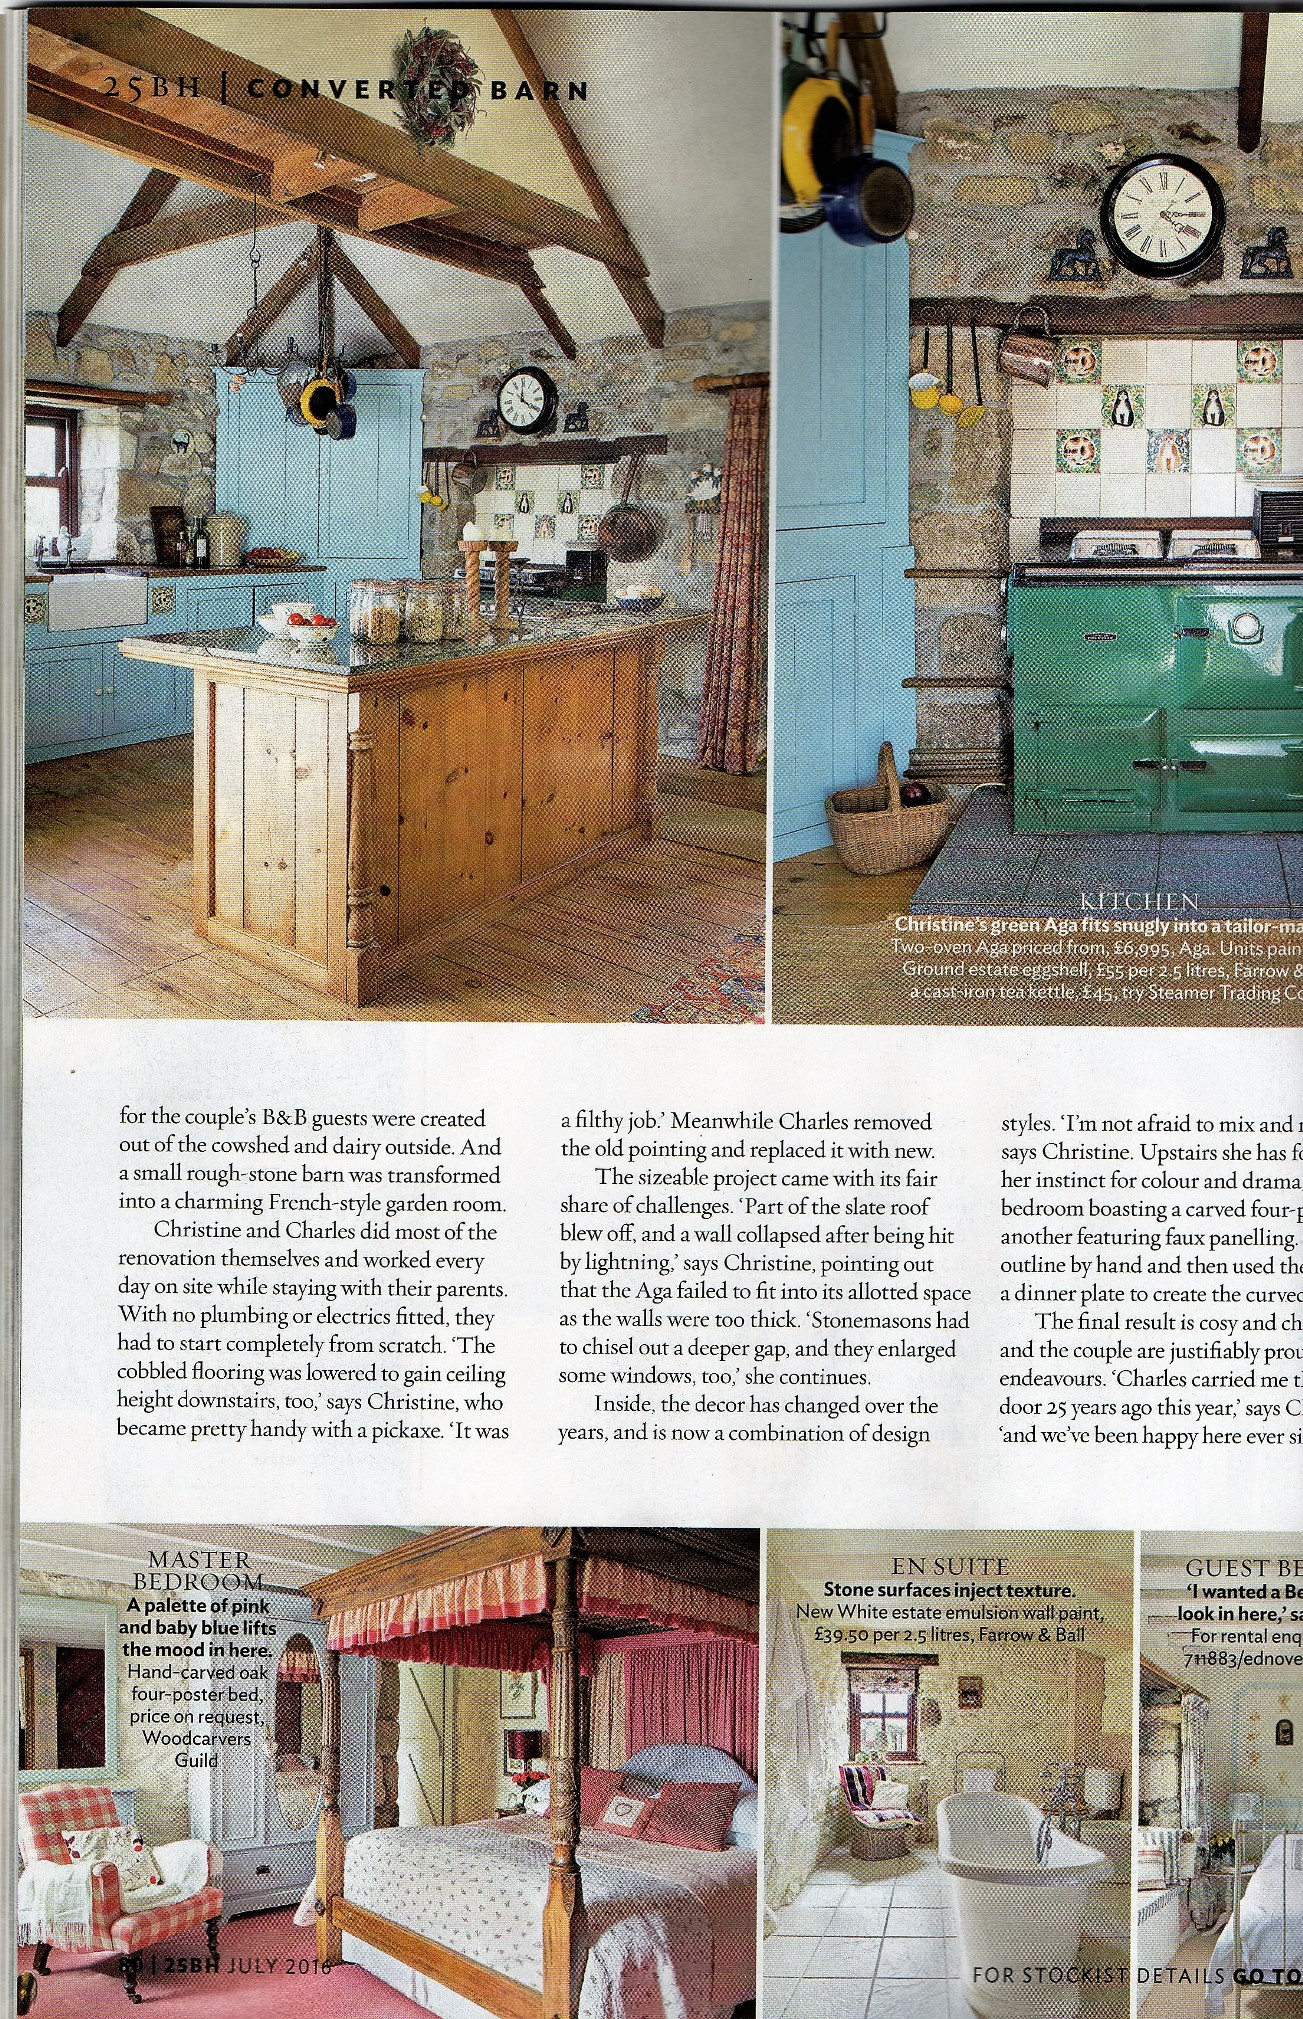 Ednovean Farm has featured in may glossy magazines